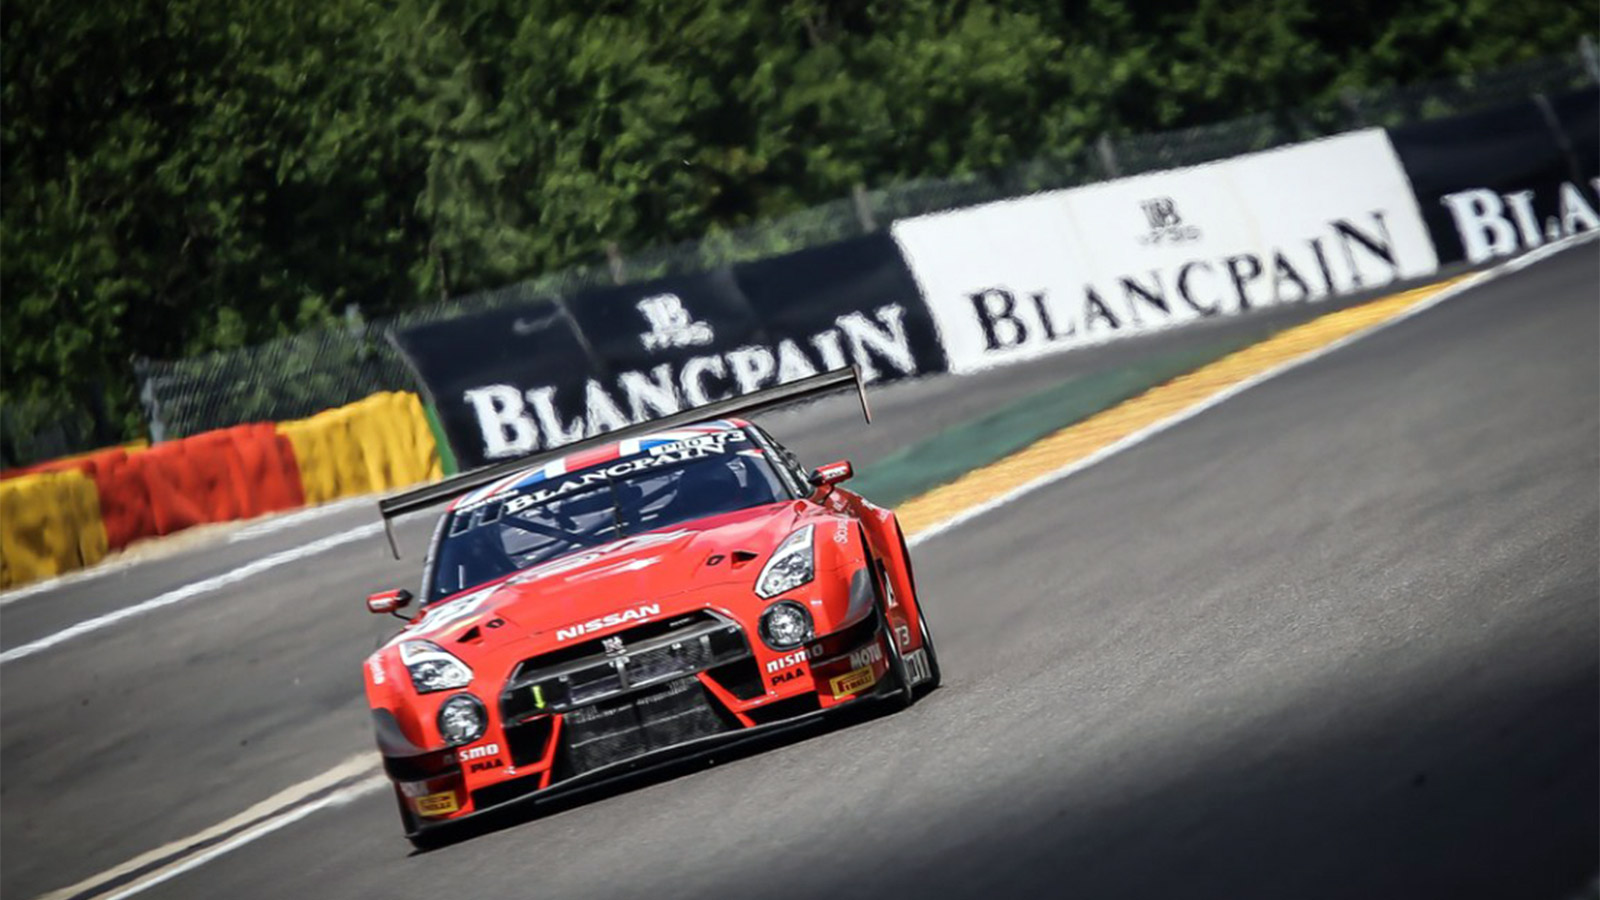 Blancpain Ace Walkinshaw Relishing Season Resumption in Portugal